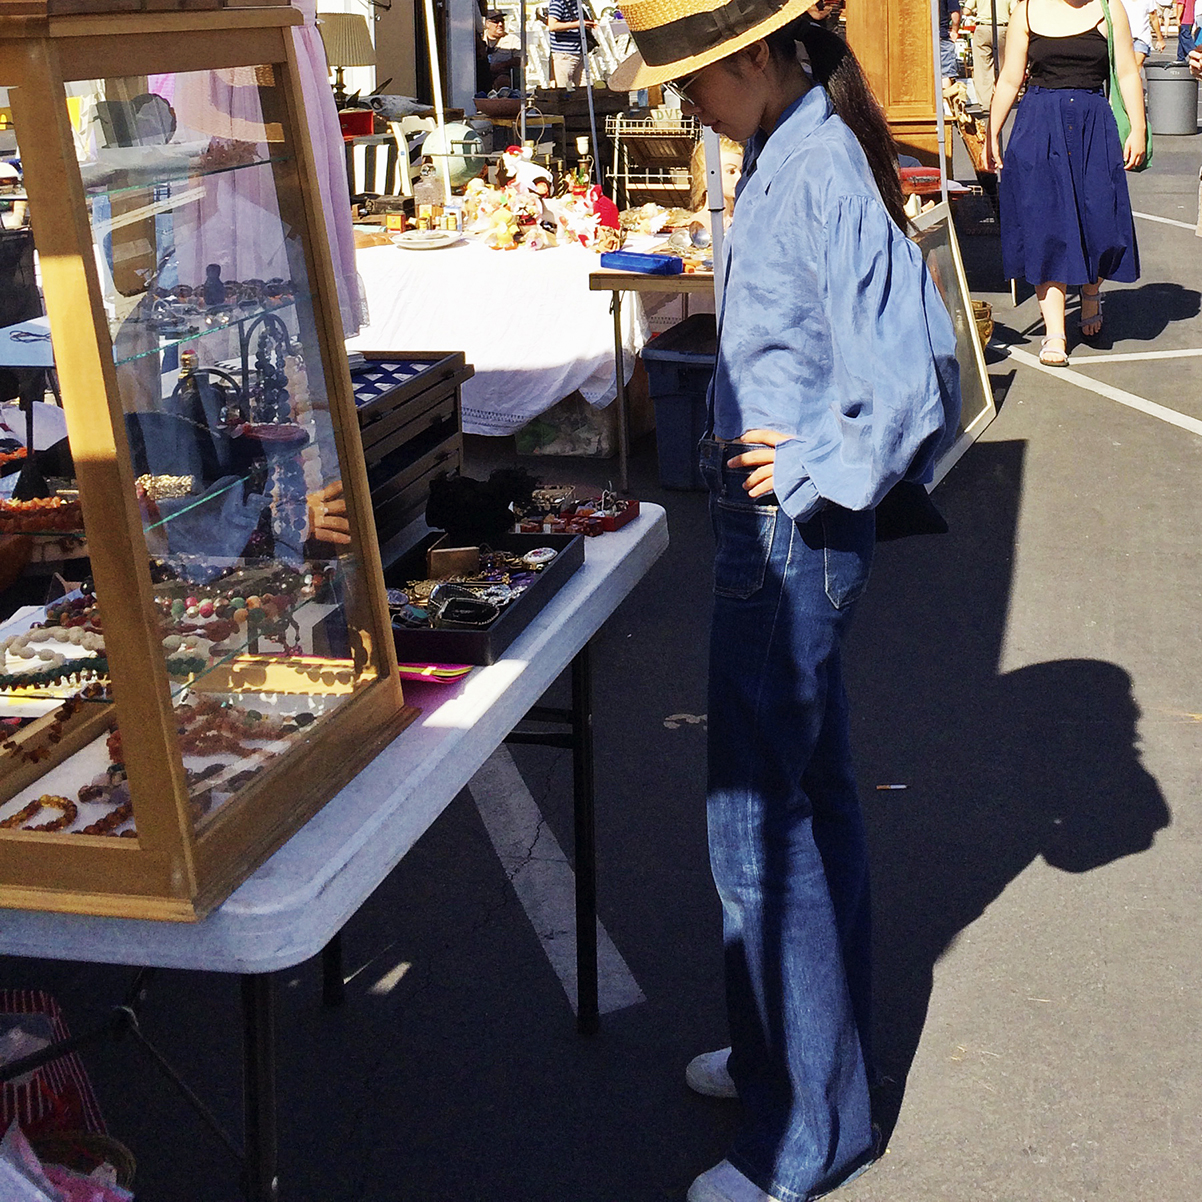 long-beach-antique-market-california-usa-2